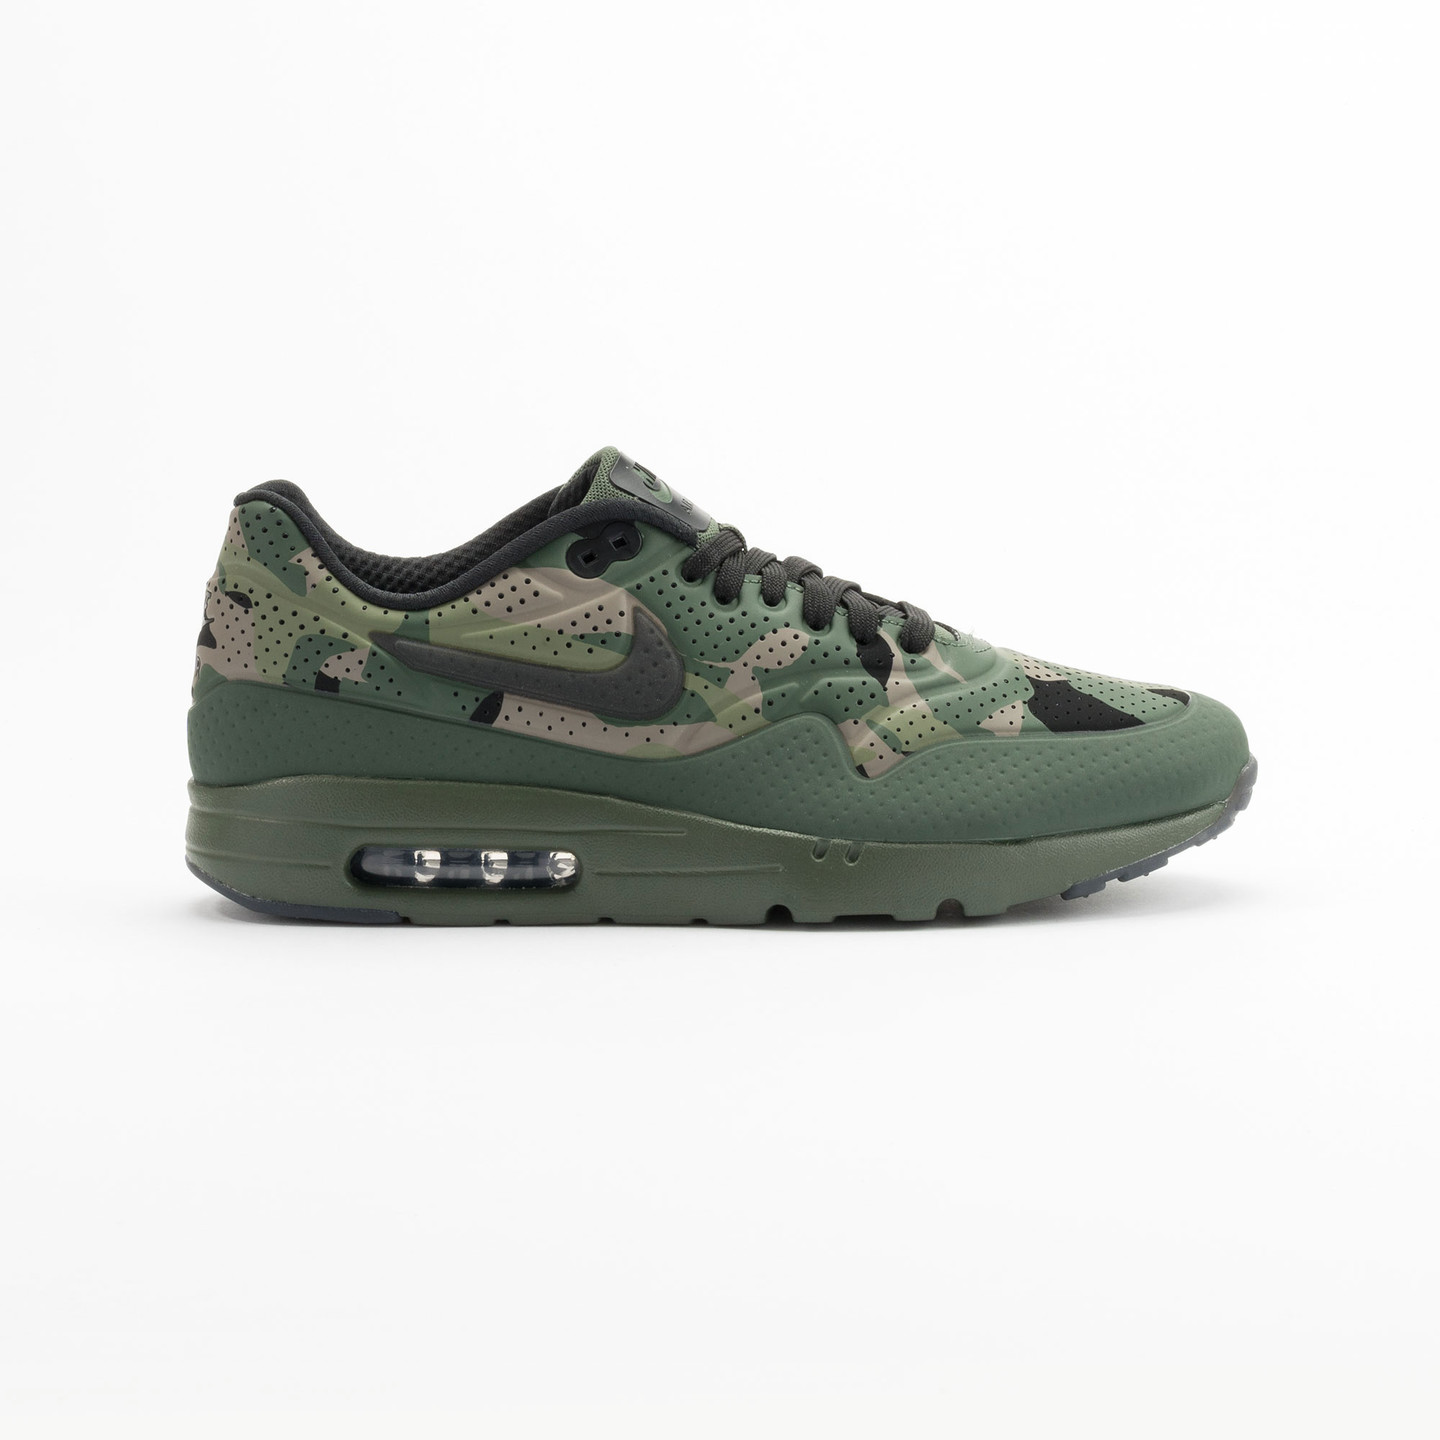 Nike Air Max 1 Ultra Moire Print Camouflage / Carbon Green 806851-300-45.5